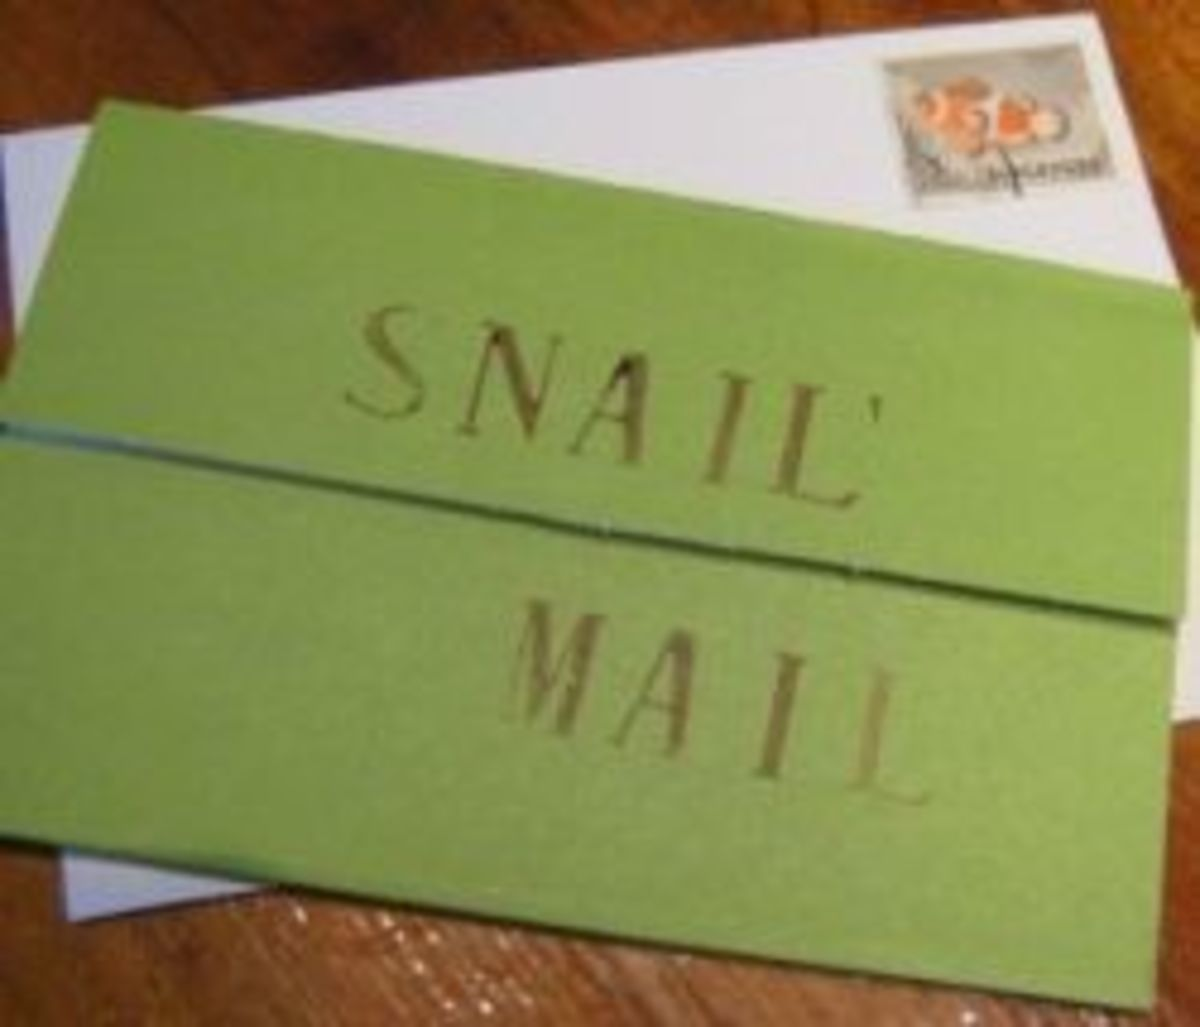 New Technology and the Power of Snail Mail